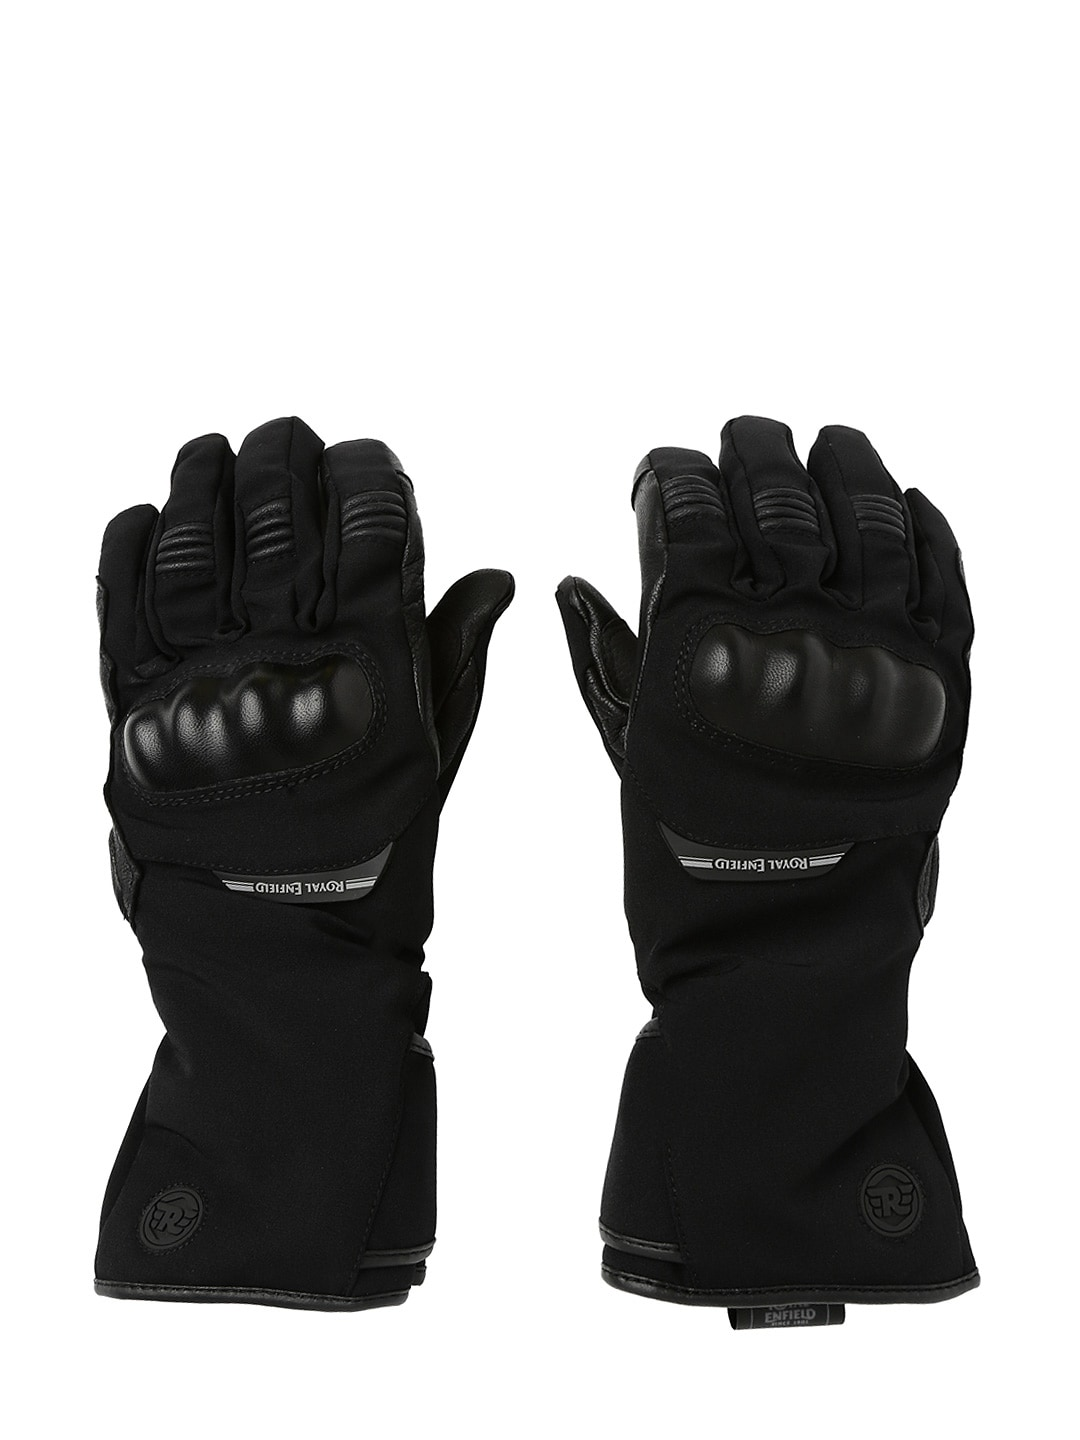 Motorcycle gloves online india - Motorcycle Gloves Online India